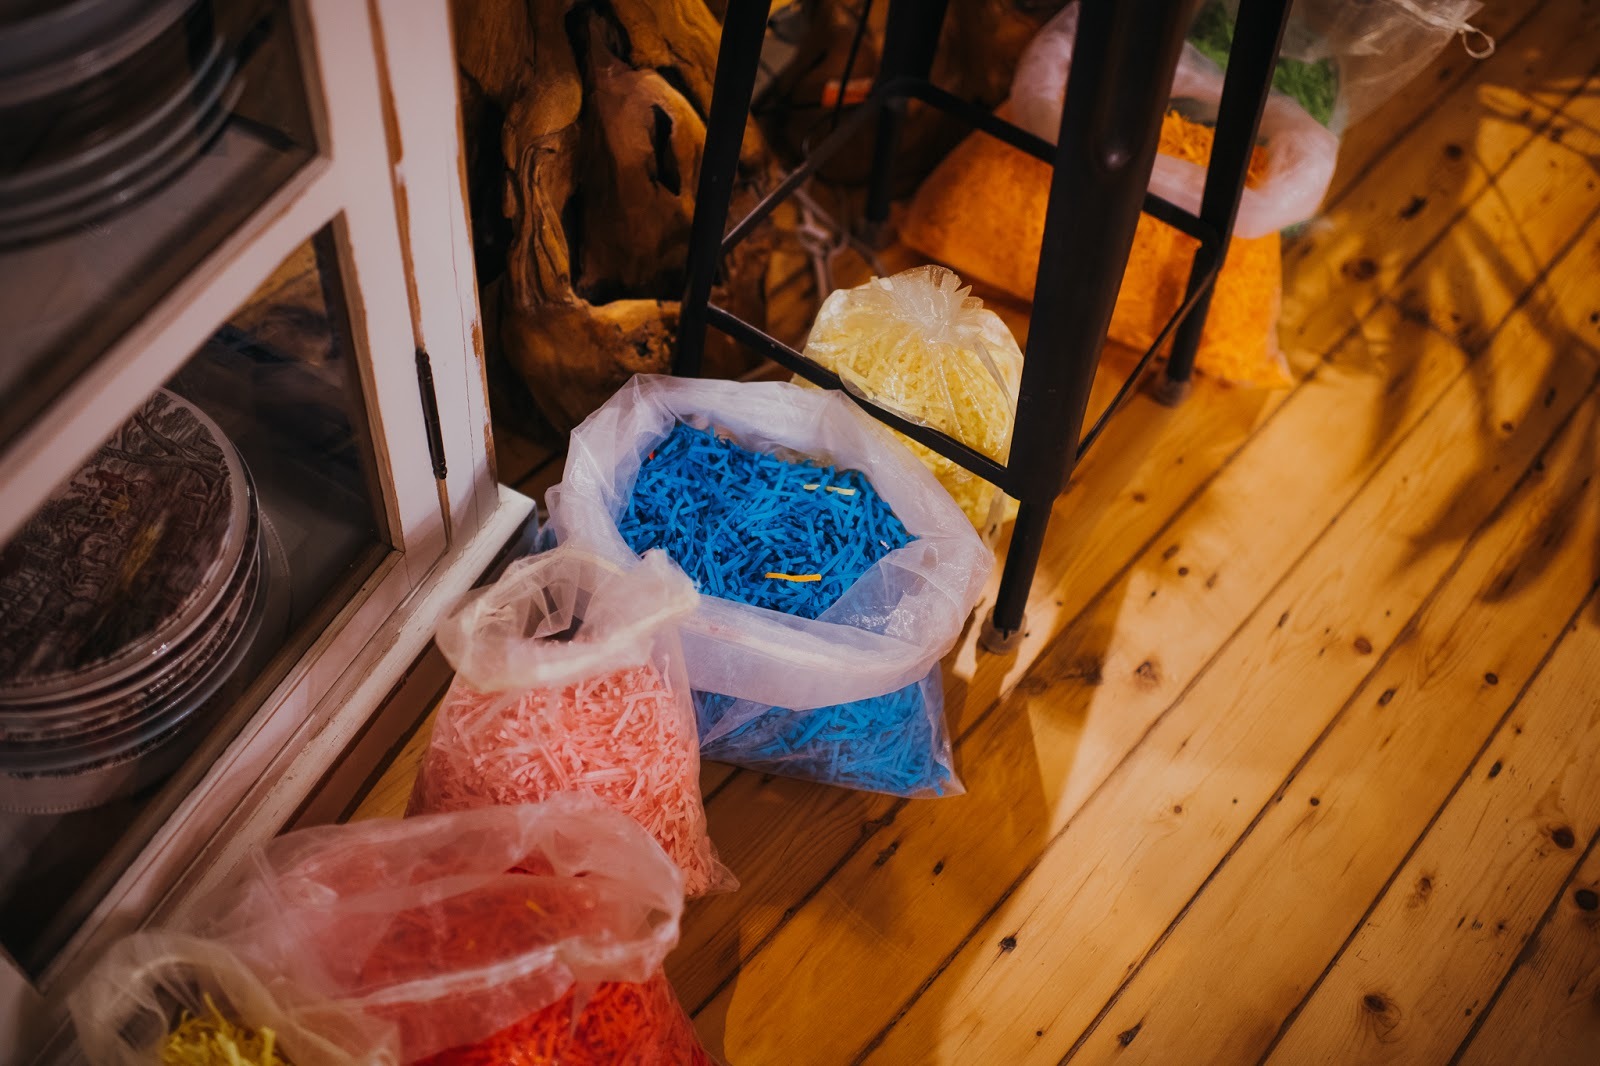 A row of bags each including a different colour of shredded paper. (Blue, pink, orange, yellow and red.)